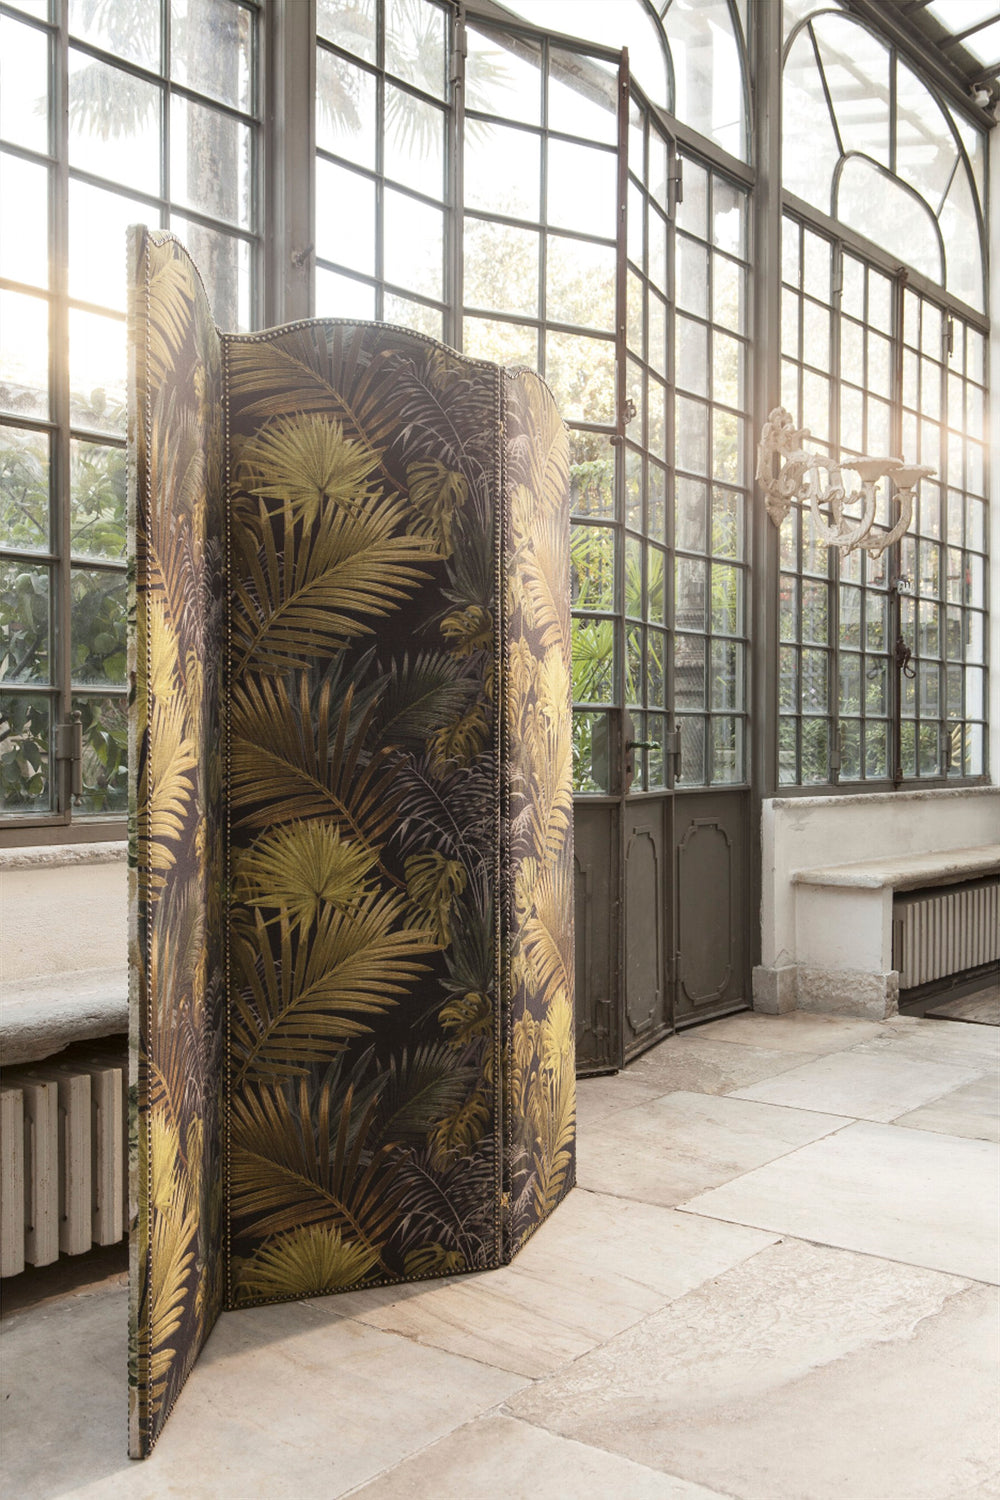 Room Divider Screen Anna by Baan | Crafthouse